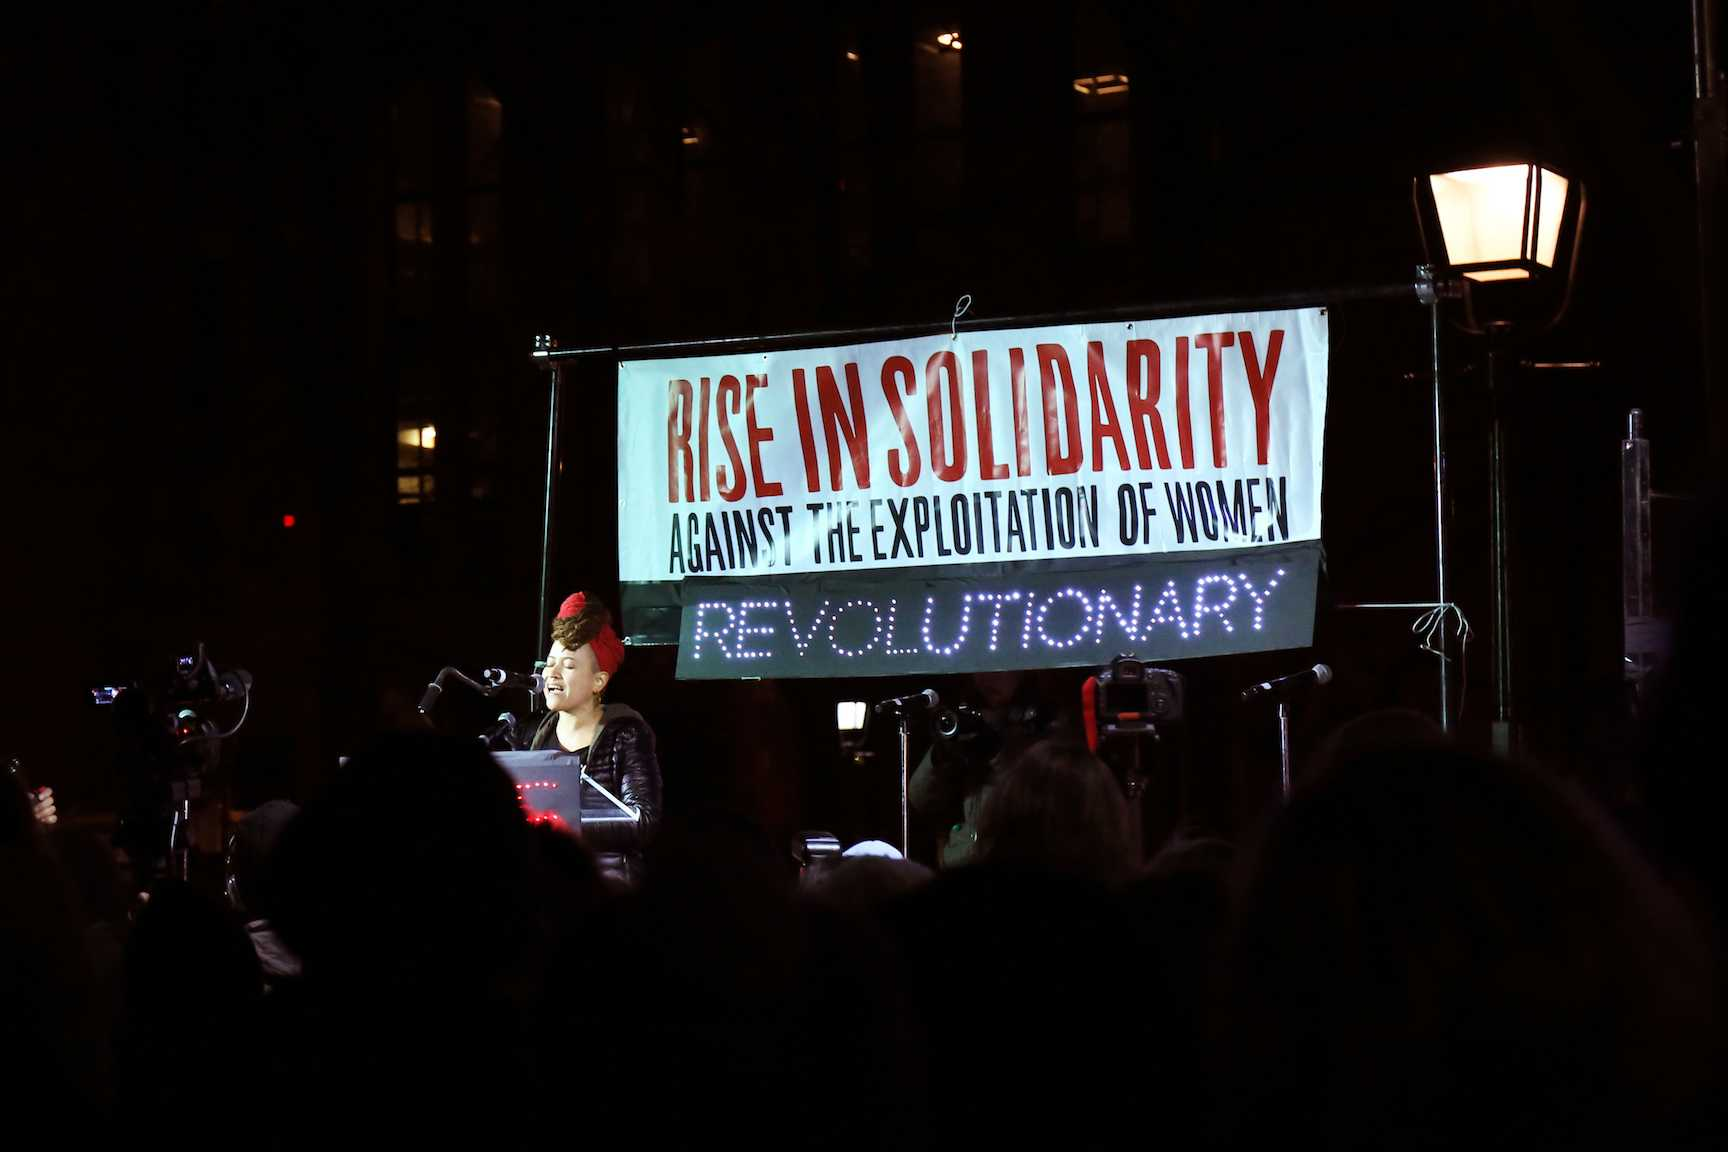 It is sometimes difficult, especially for students, to find proactive ways to help those in need.  Some decide to show their support through protests, like the Artistic Uprising protest in Washington Square Park on February 14.